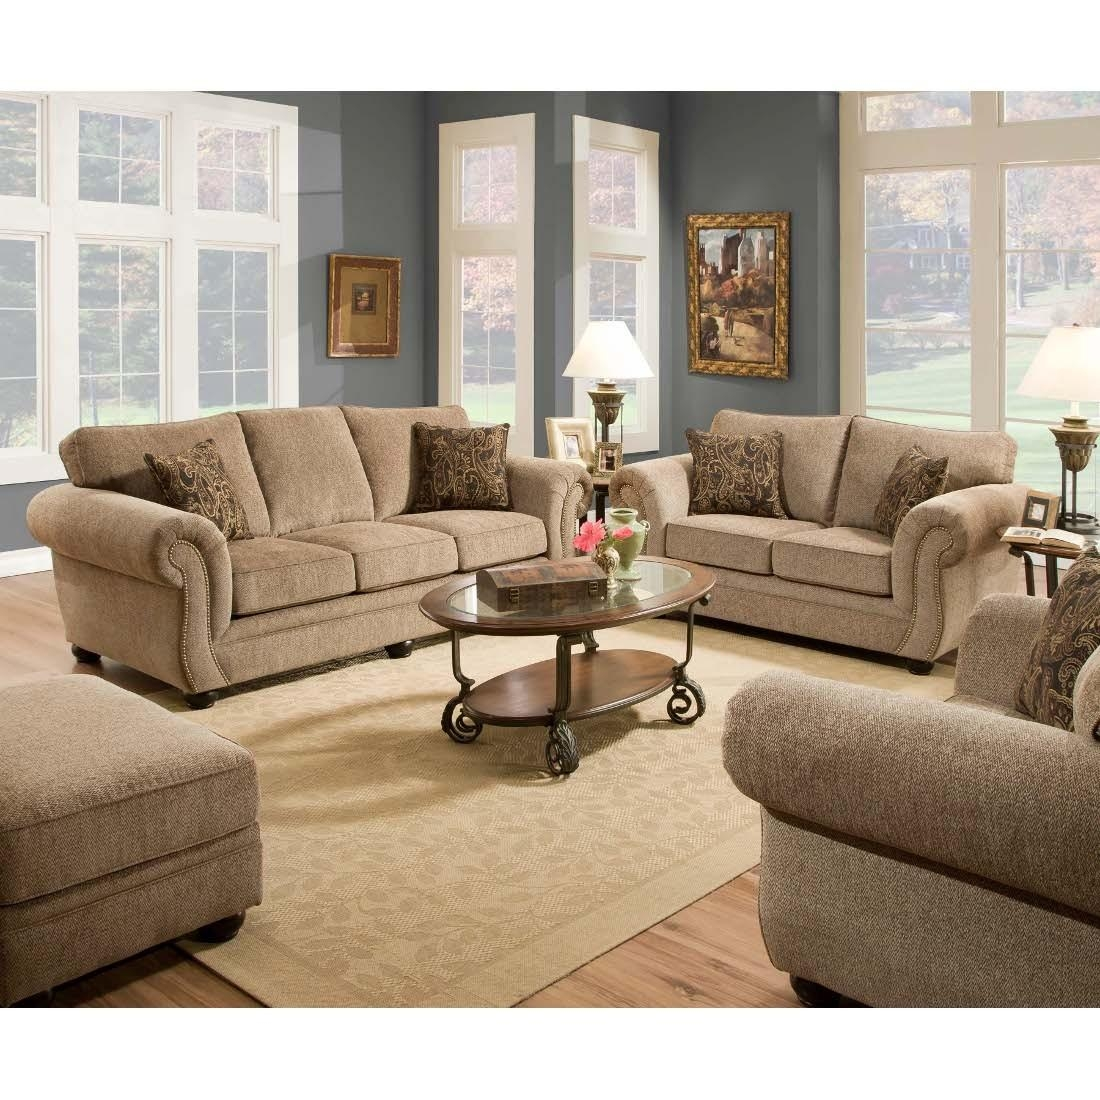 Sleeper Chair And Loveseat Set